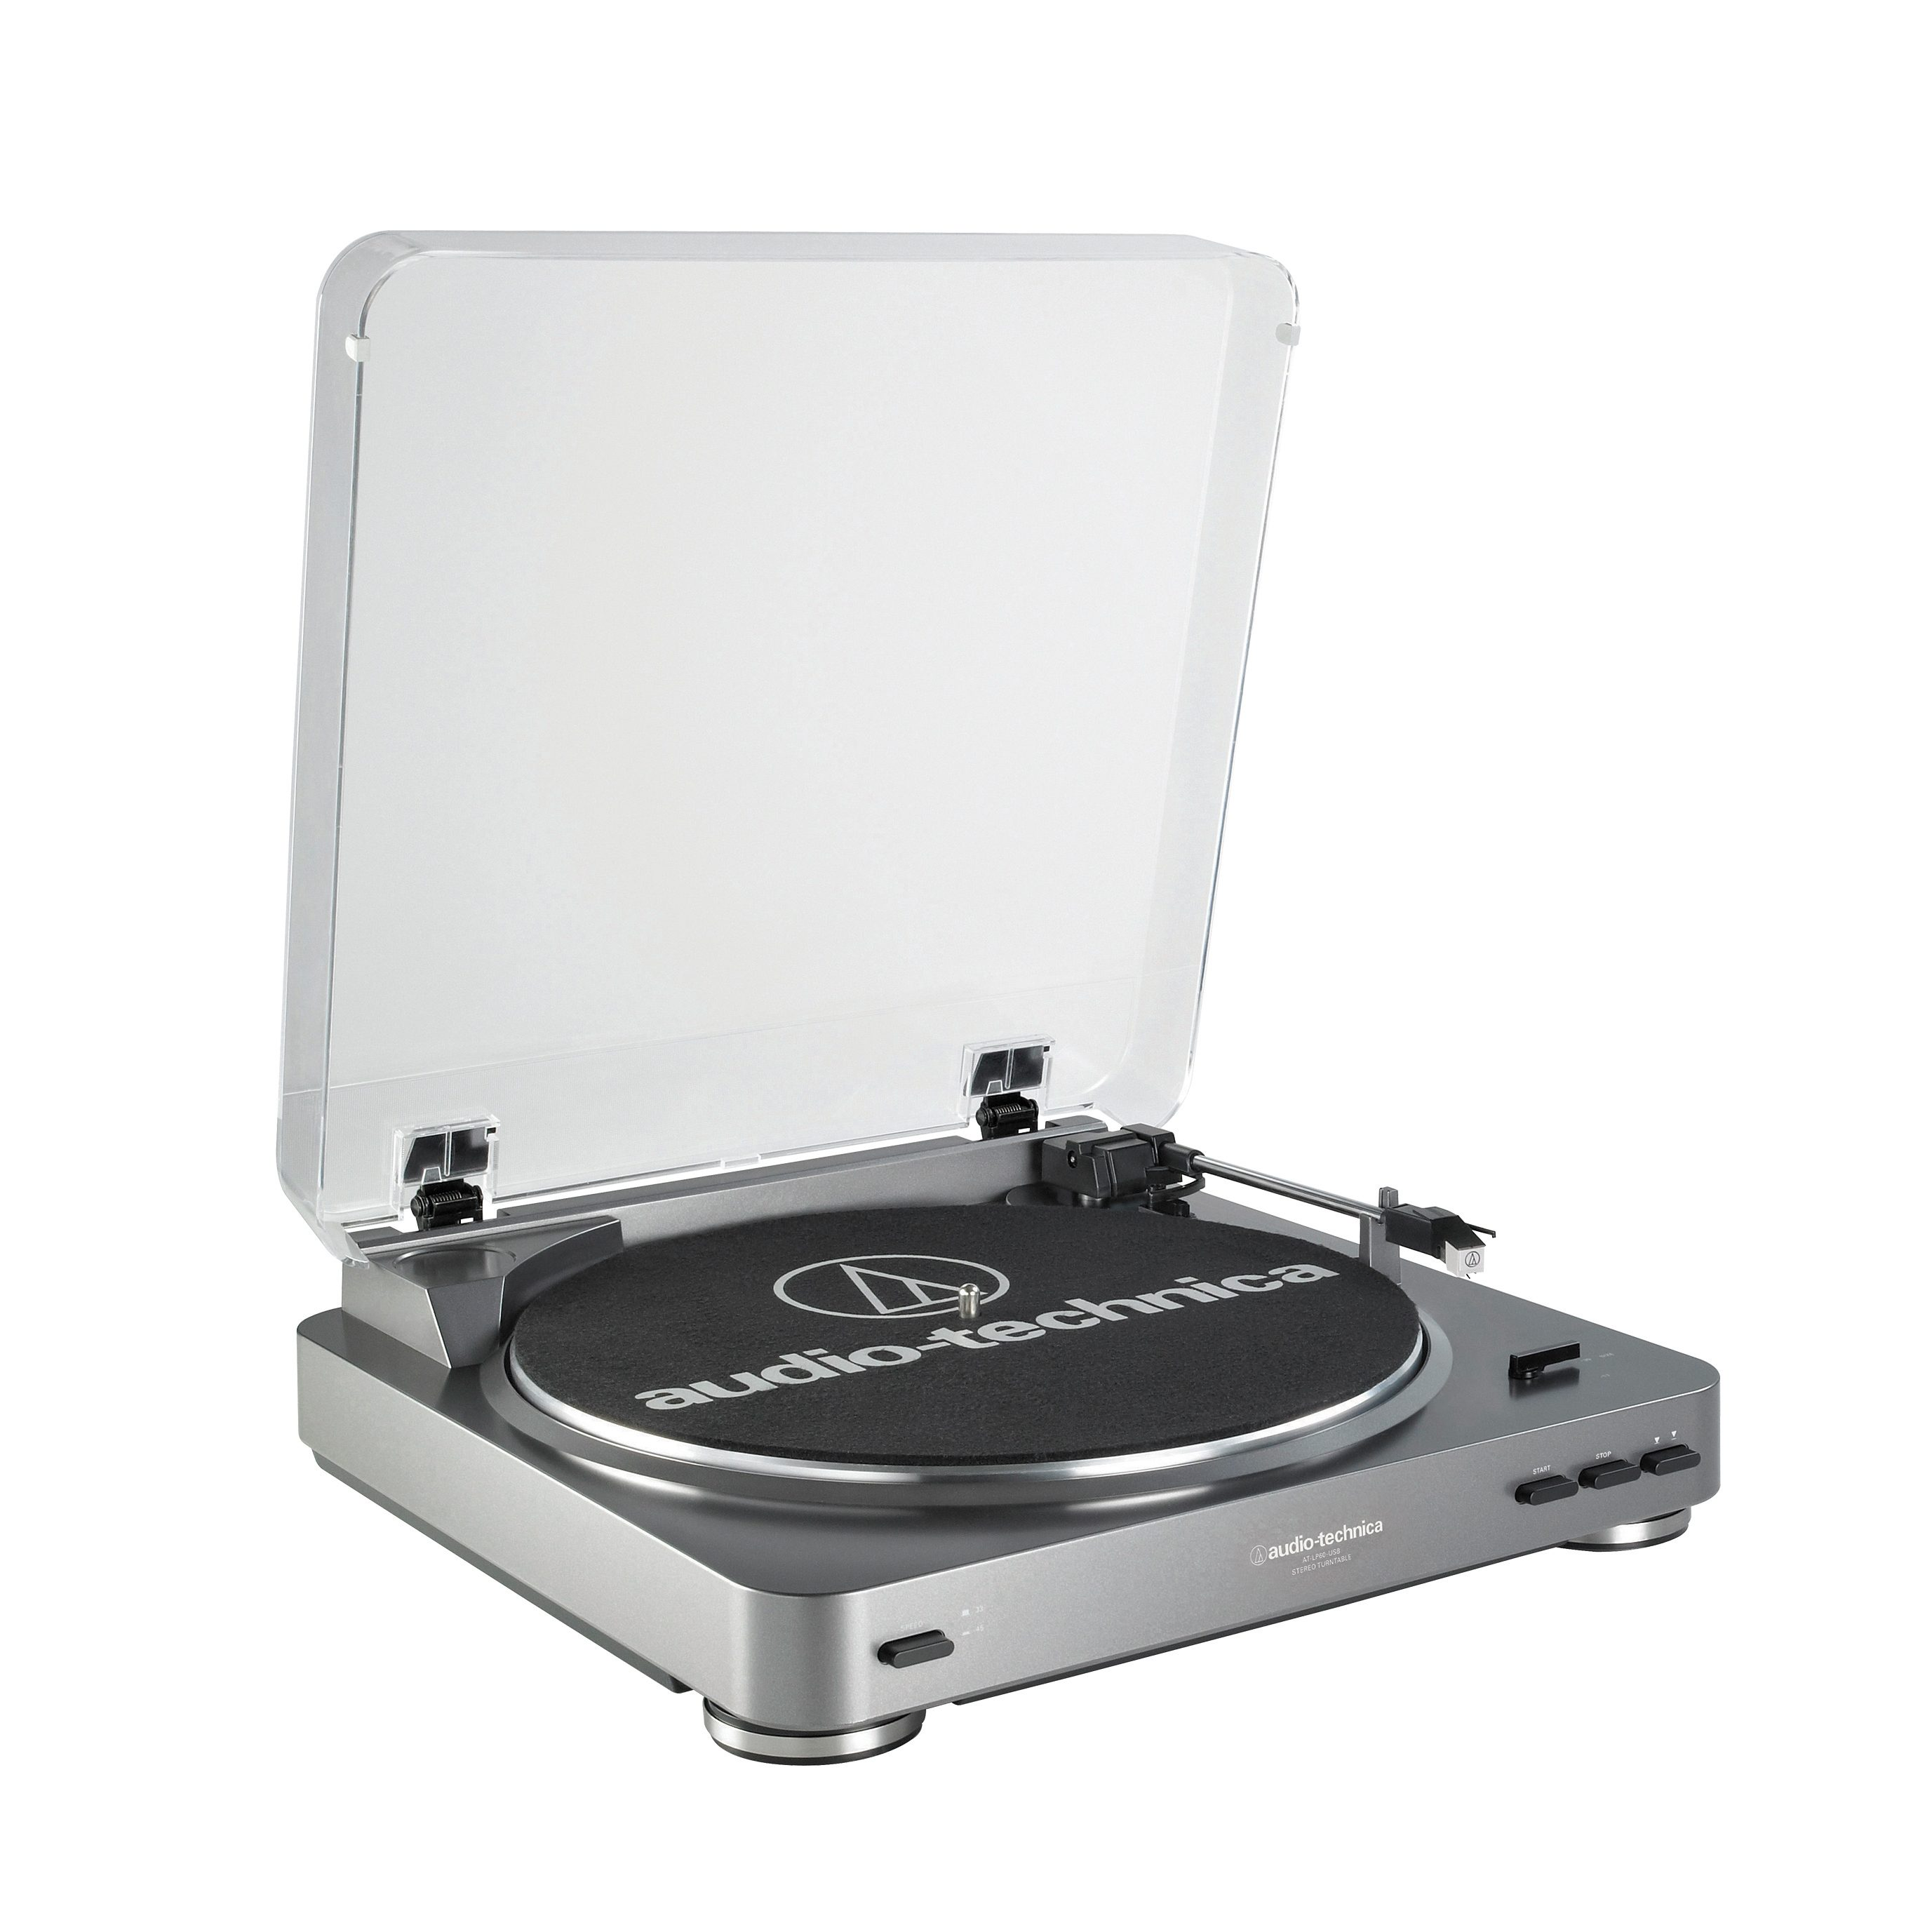 Audio-Technica USB Plattenspieler »AT-LP60USB Stereo Turntable«